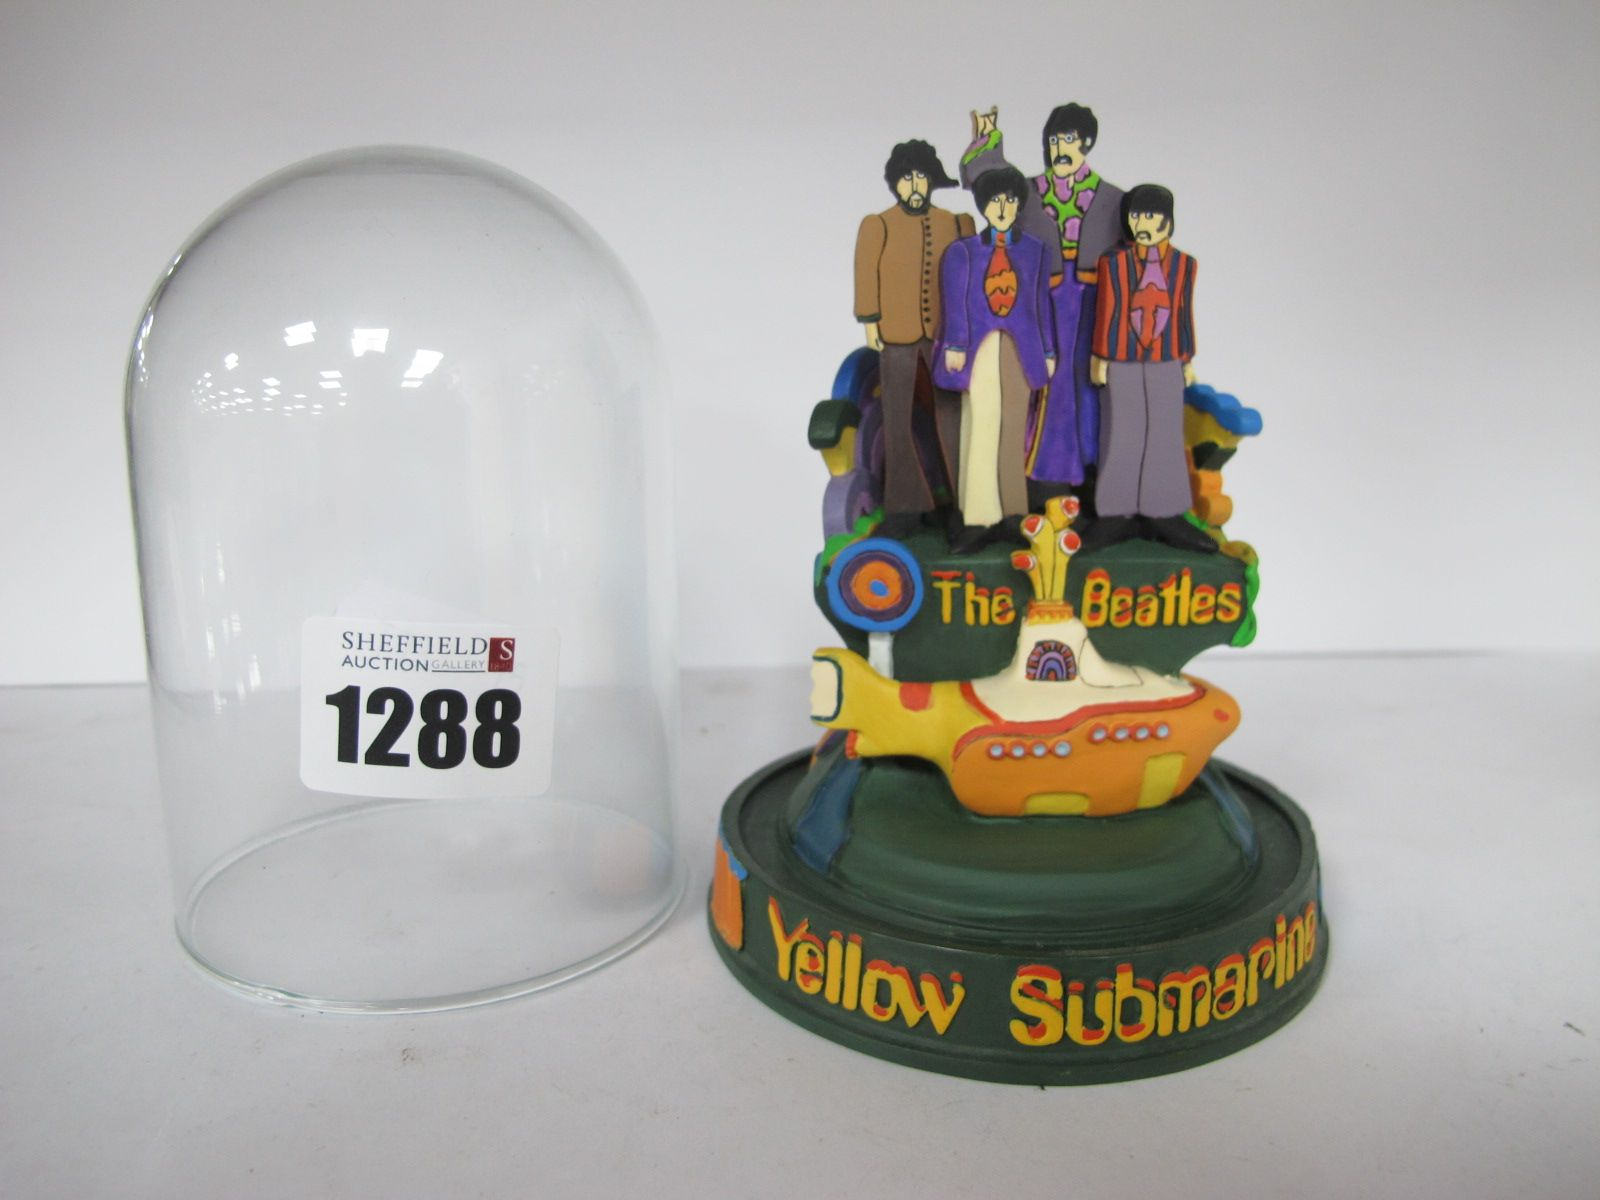 The Beatles Franklin Mint 'Yellow Submarine' Model, under glass dome 11cm high.